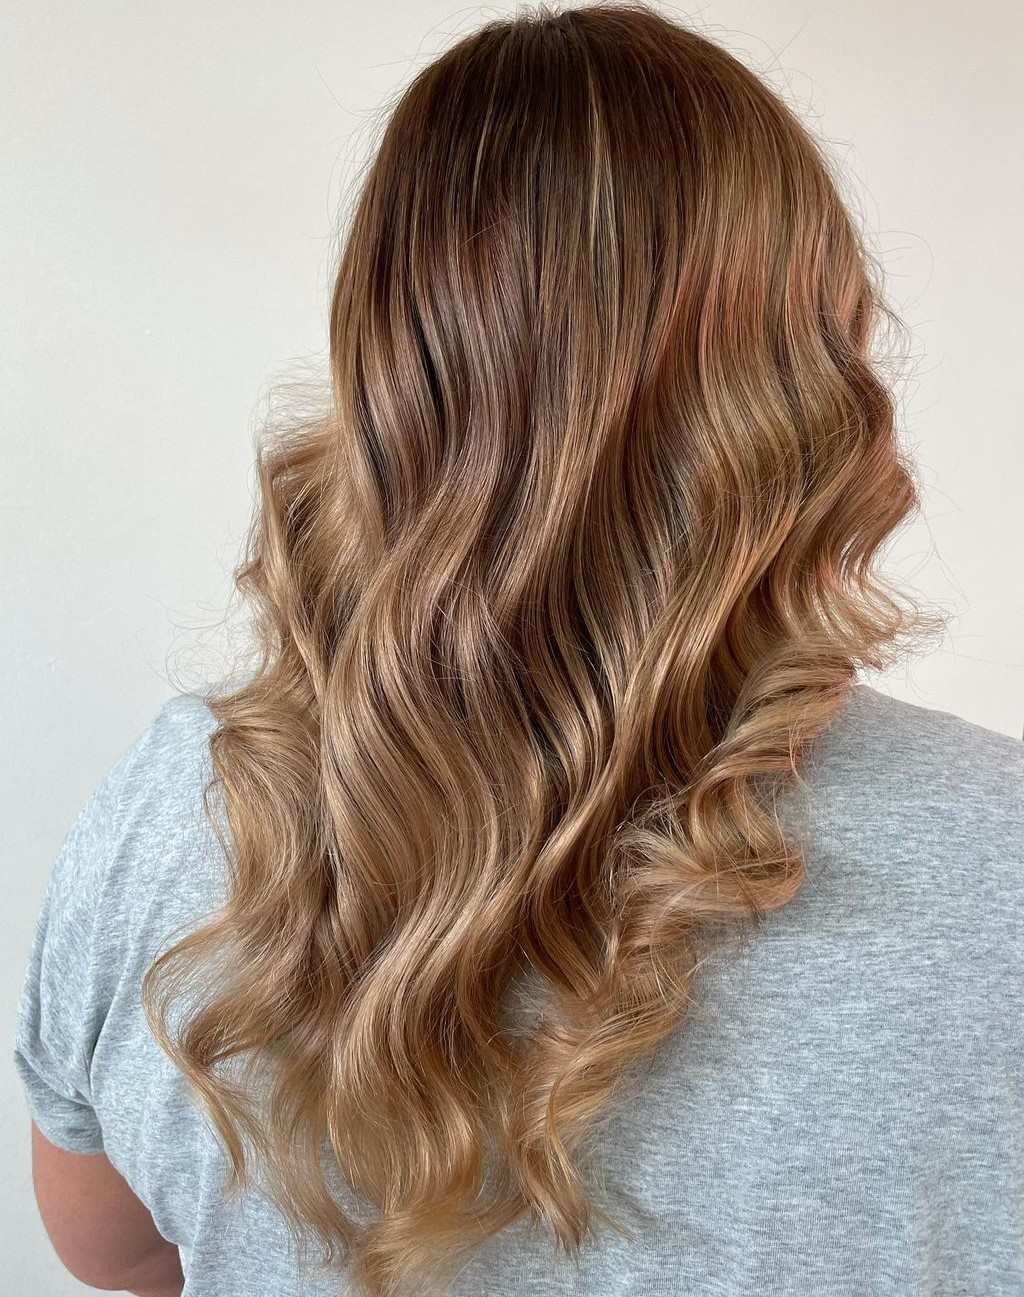 V-Cut with a Subtle Balayage and Curls